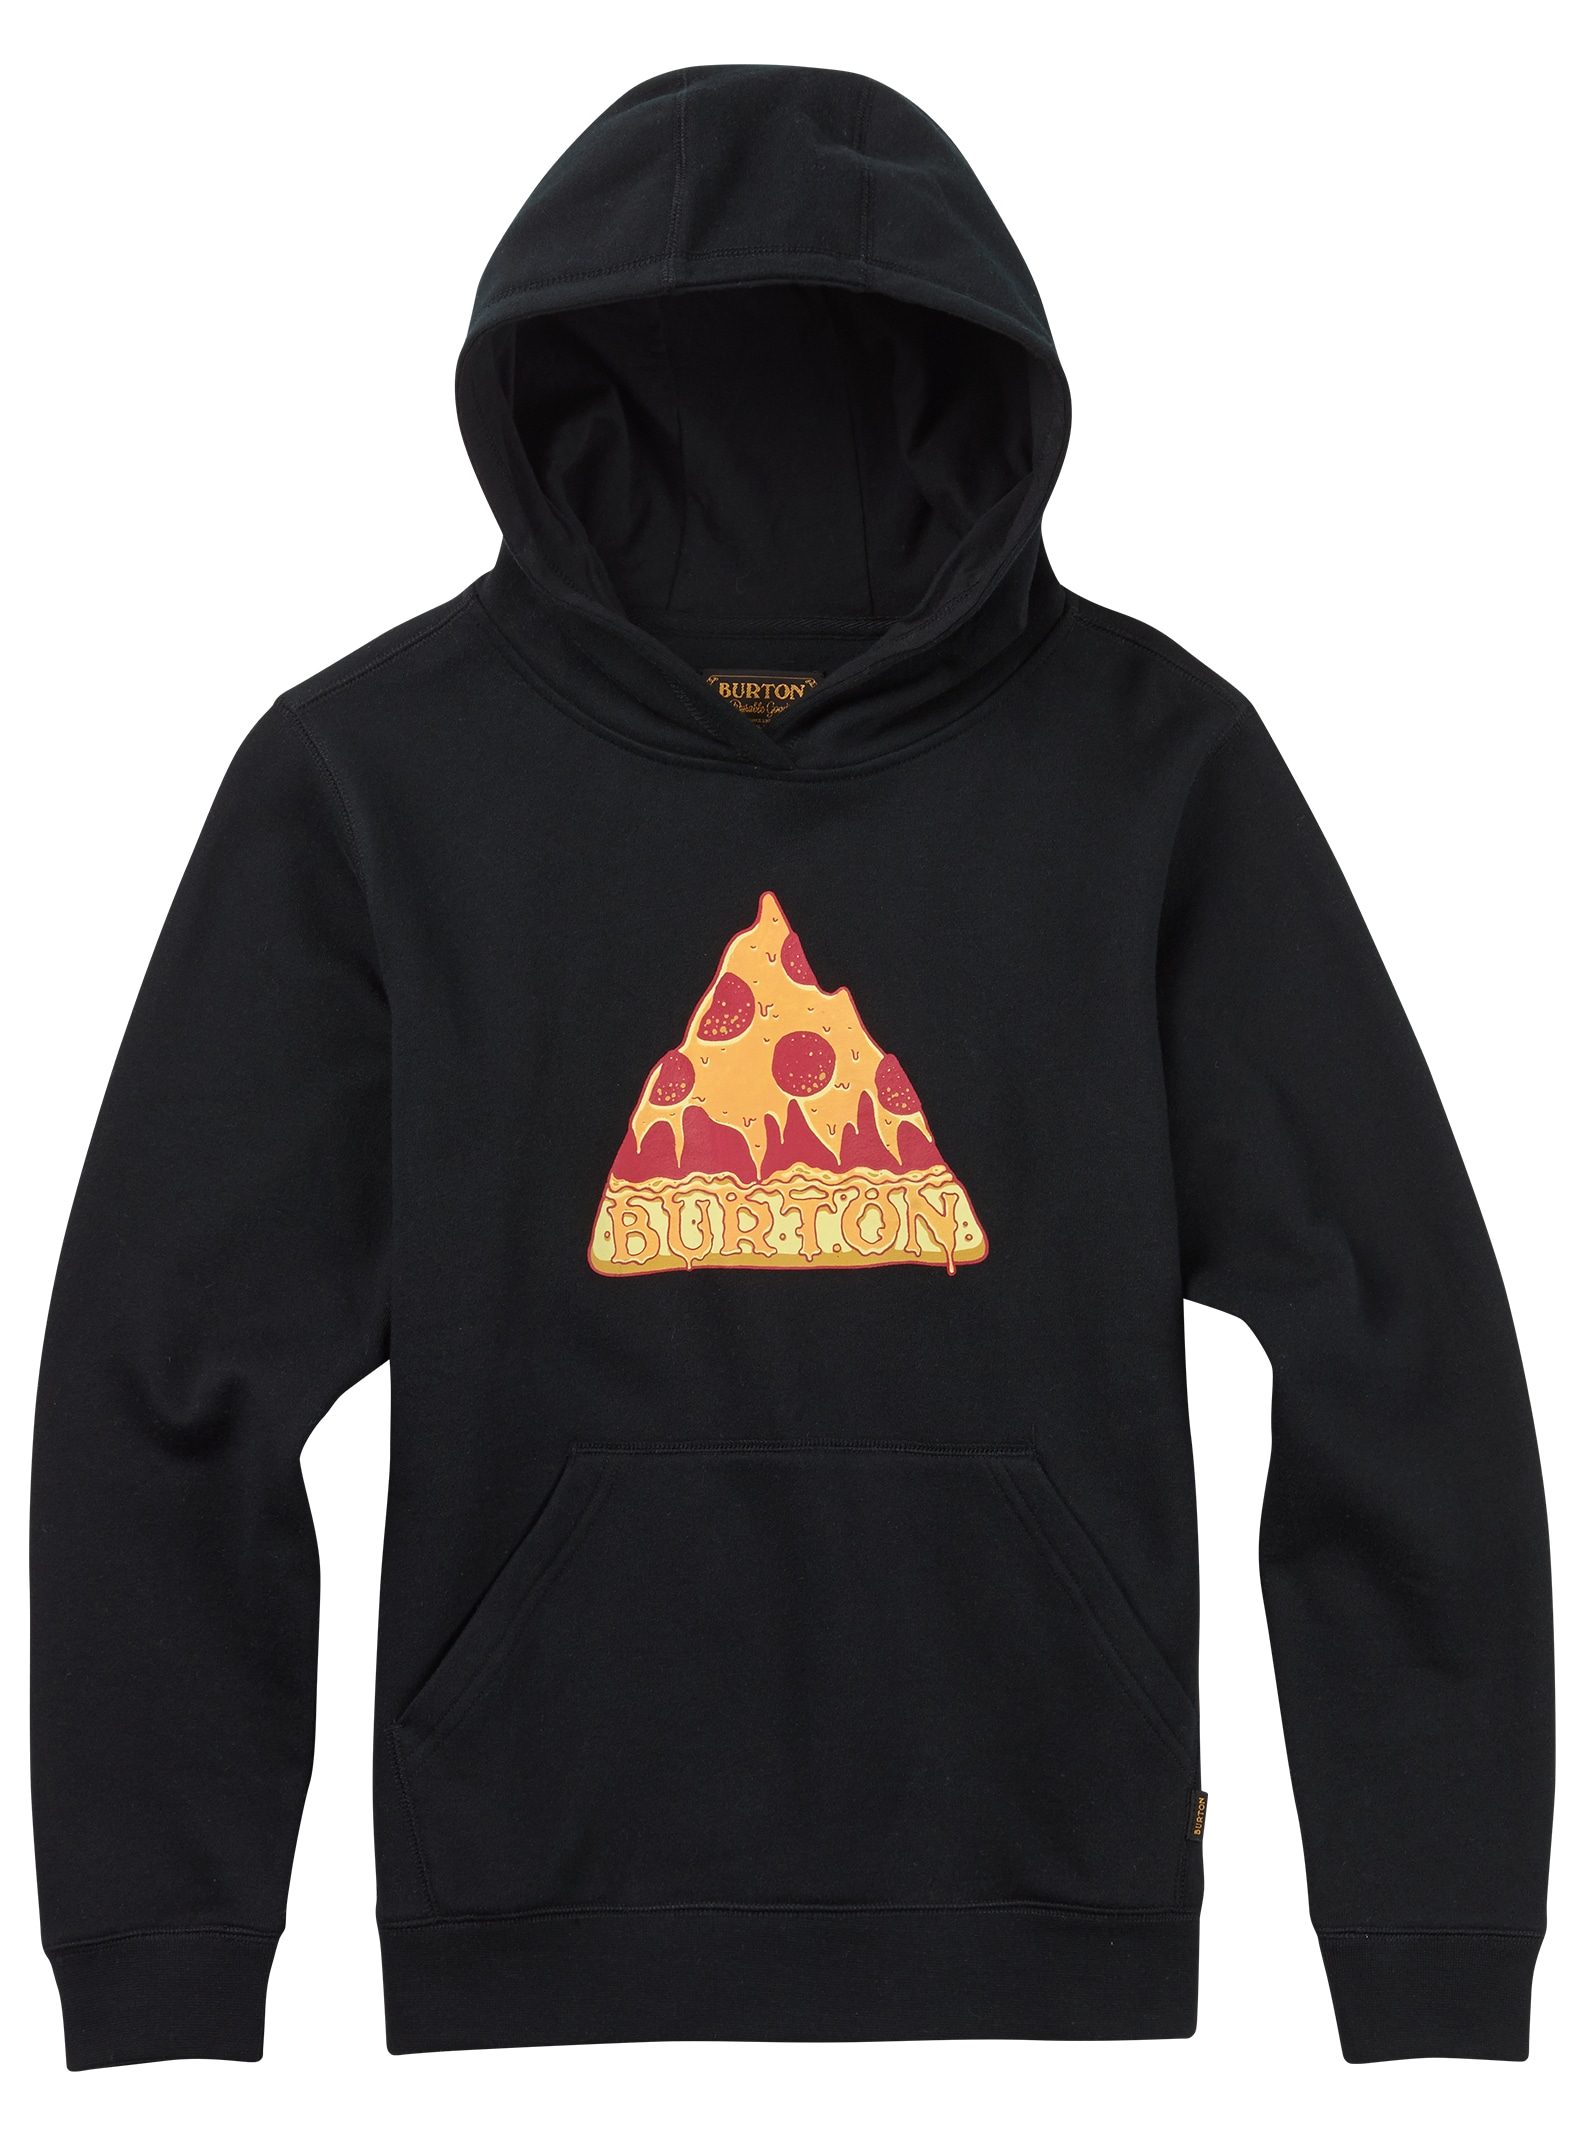 Burton - Pull Mountain Pizza garçon affichage en True Black